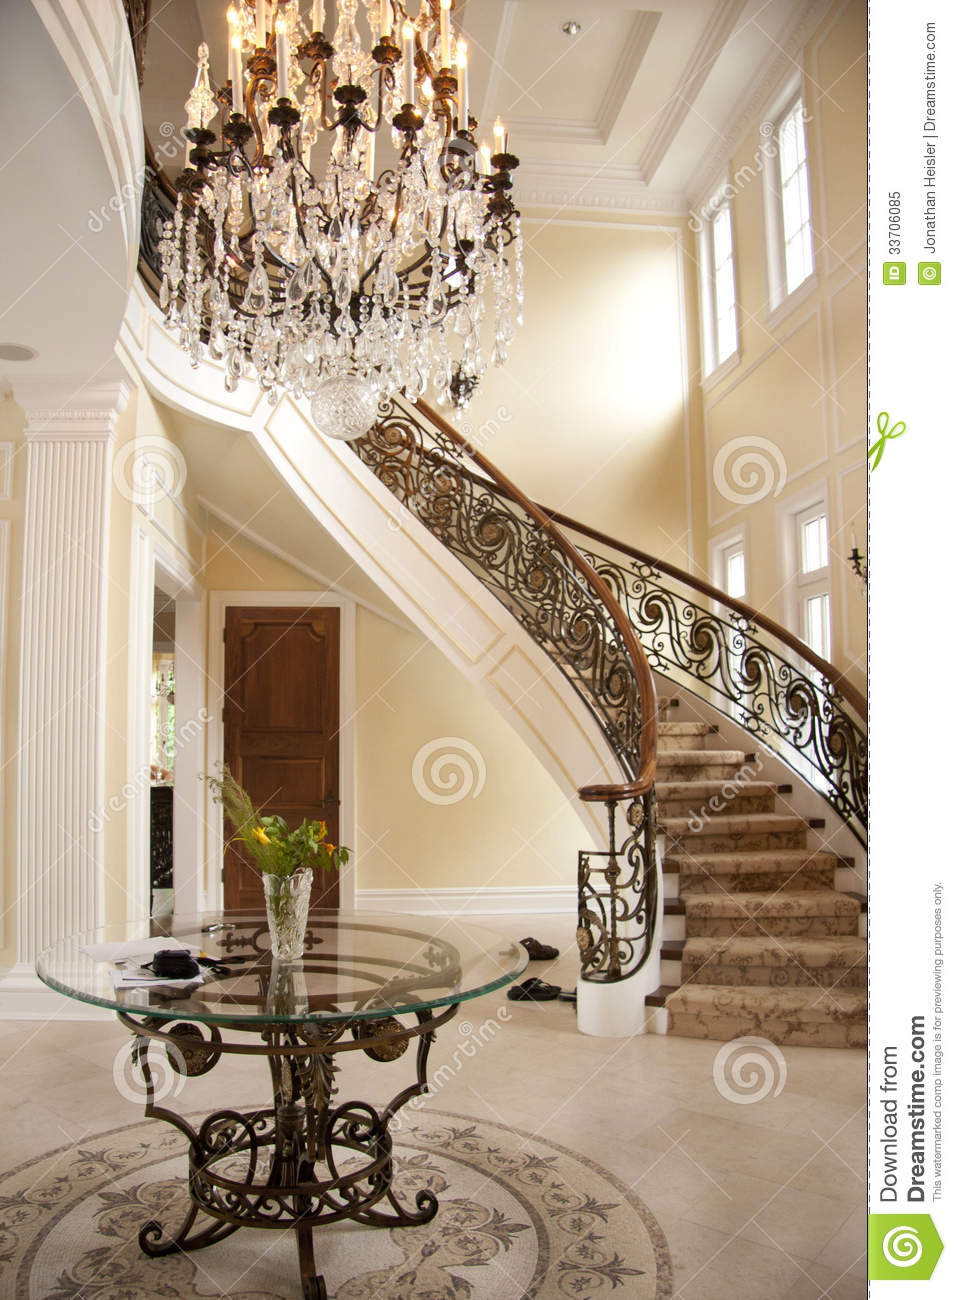 Superior Grand Entrances #2: Welcome Entrance Grand Multi Million Dollar  House Interior Photography Job 33706085